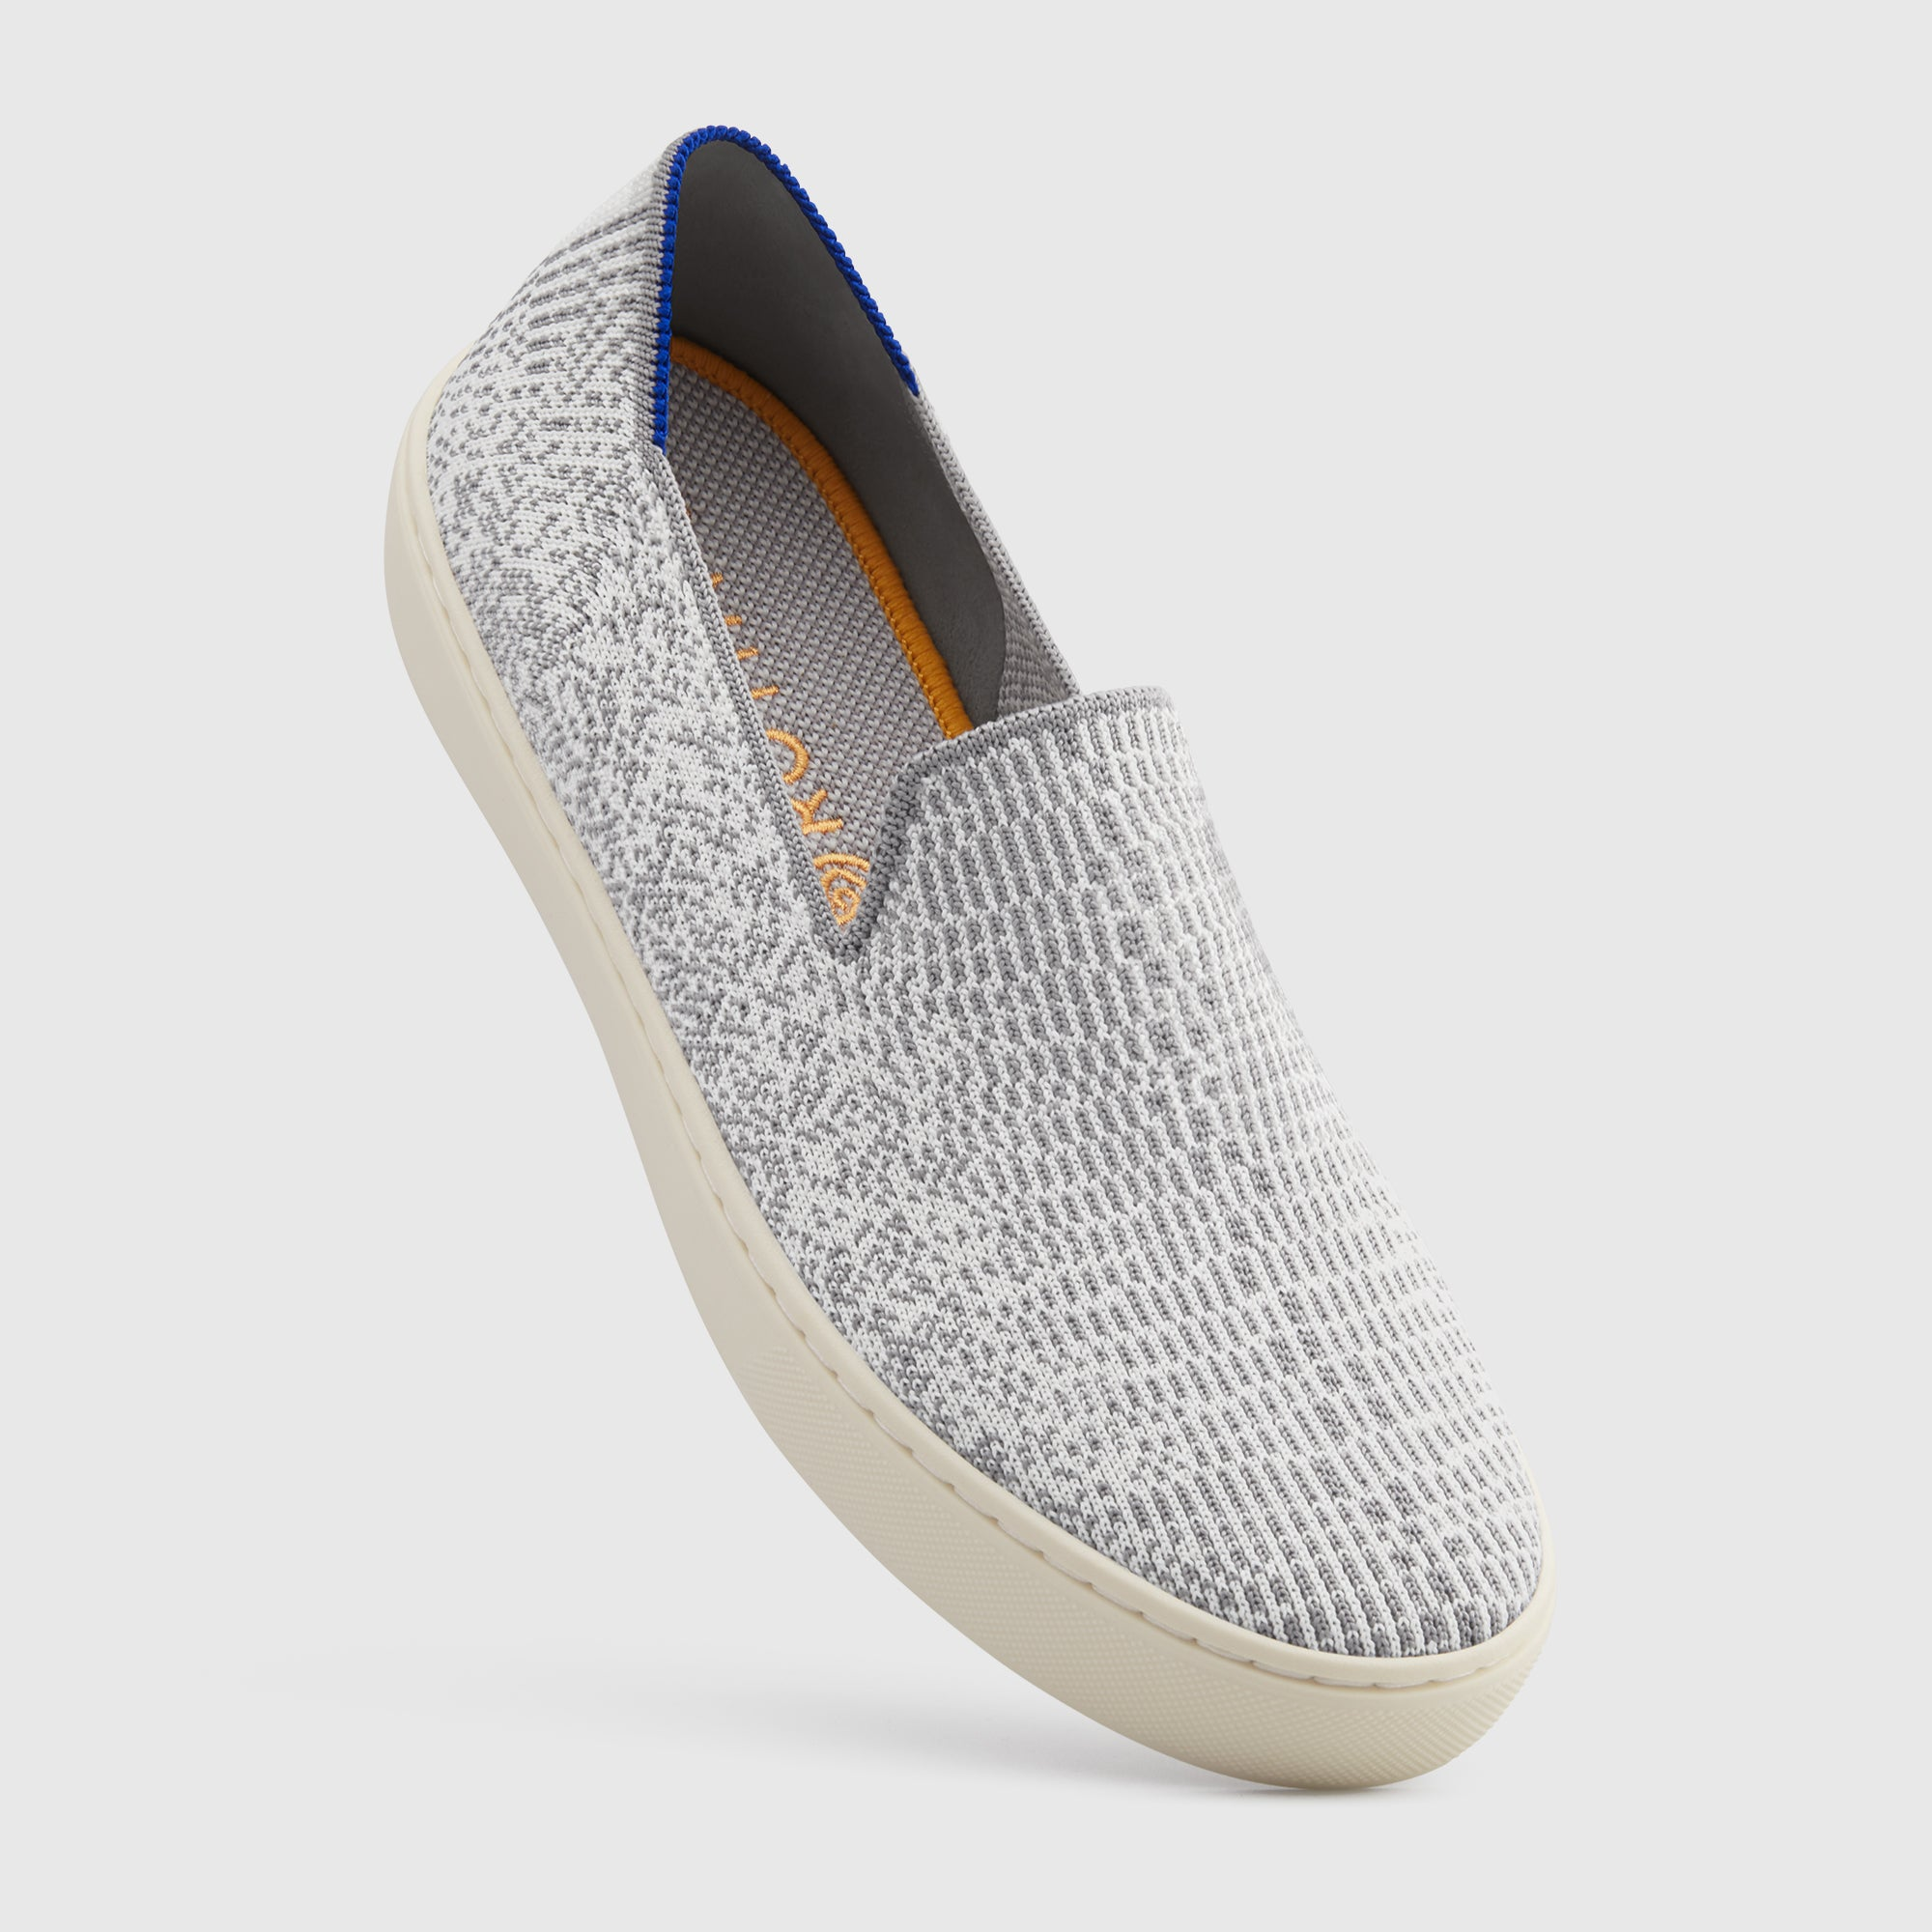 The Sneaker in Opal Python shown from the front at an angle.